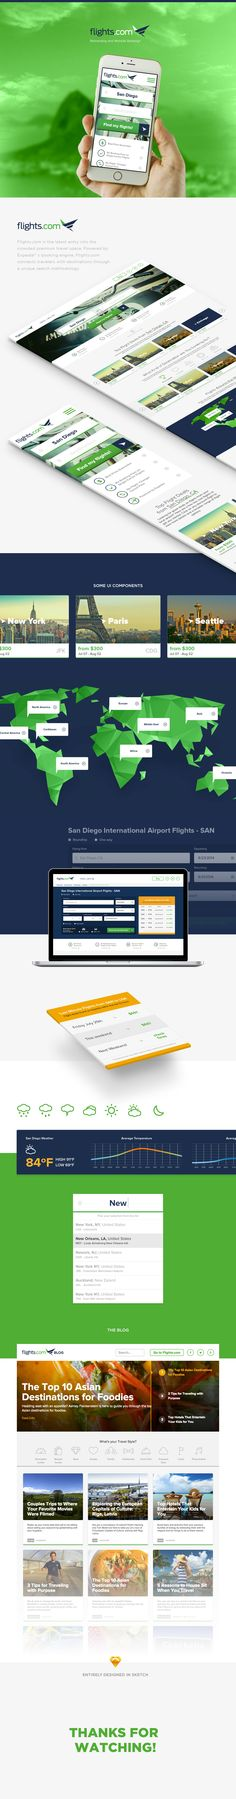 Flights.com on Behance